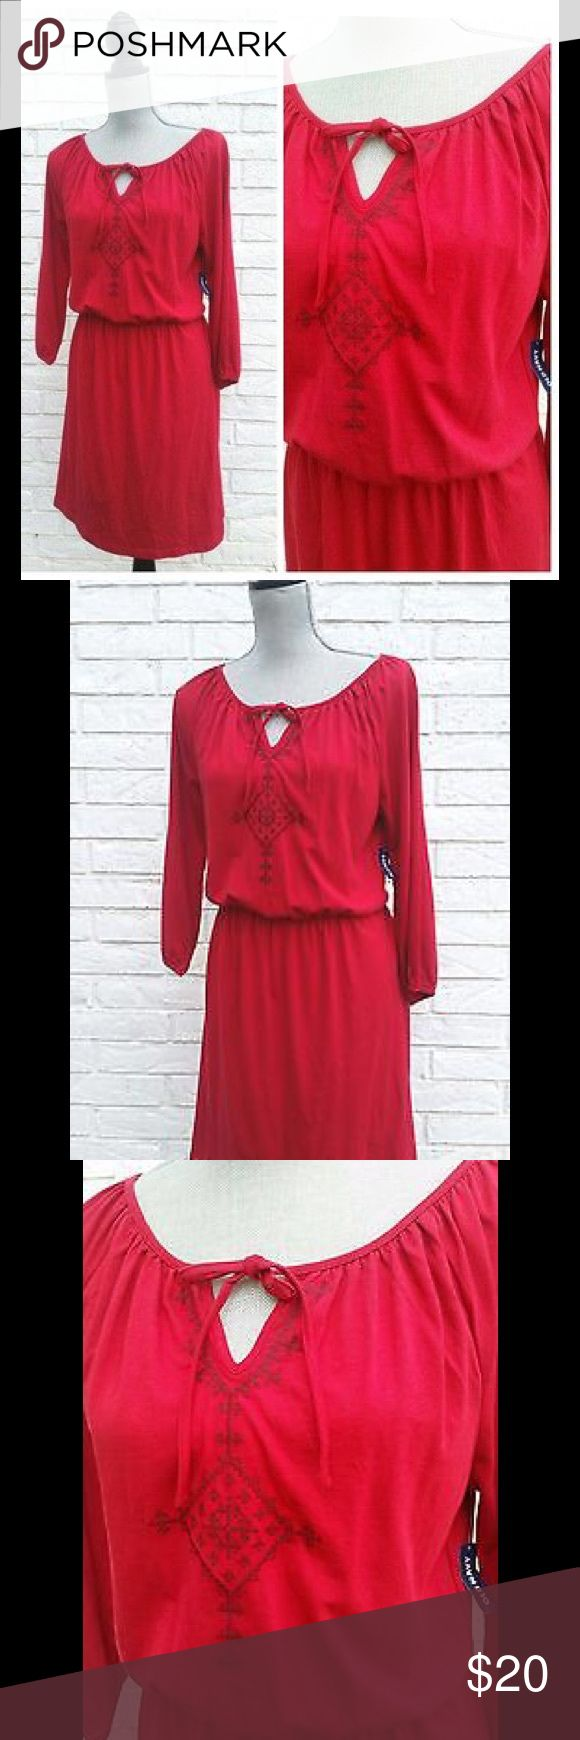 """NWT OLD NAVY Red Dress Sz M Old Navy Peasant Dress Lightweight, Soft Cotton  Natural Red, with embroidery  Perfect Casual autumn dress! Size Medium  38"""" Long Old Navy Dresses Long Sleeve"""